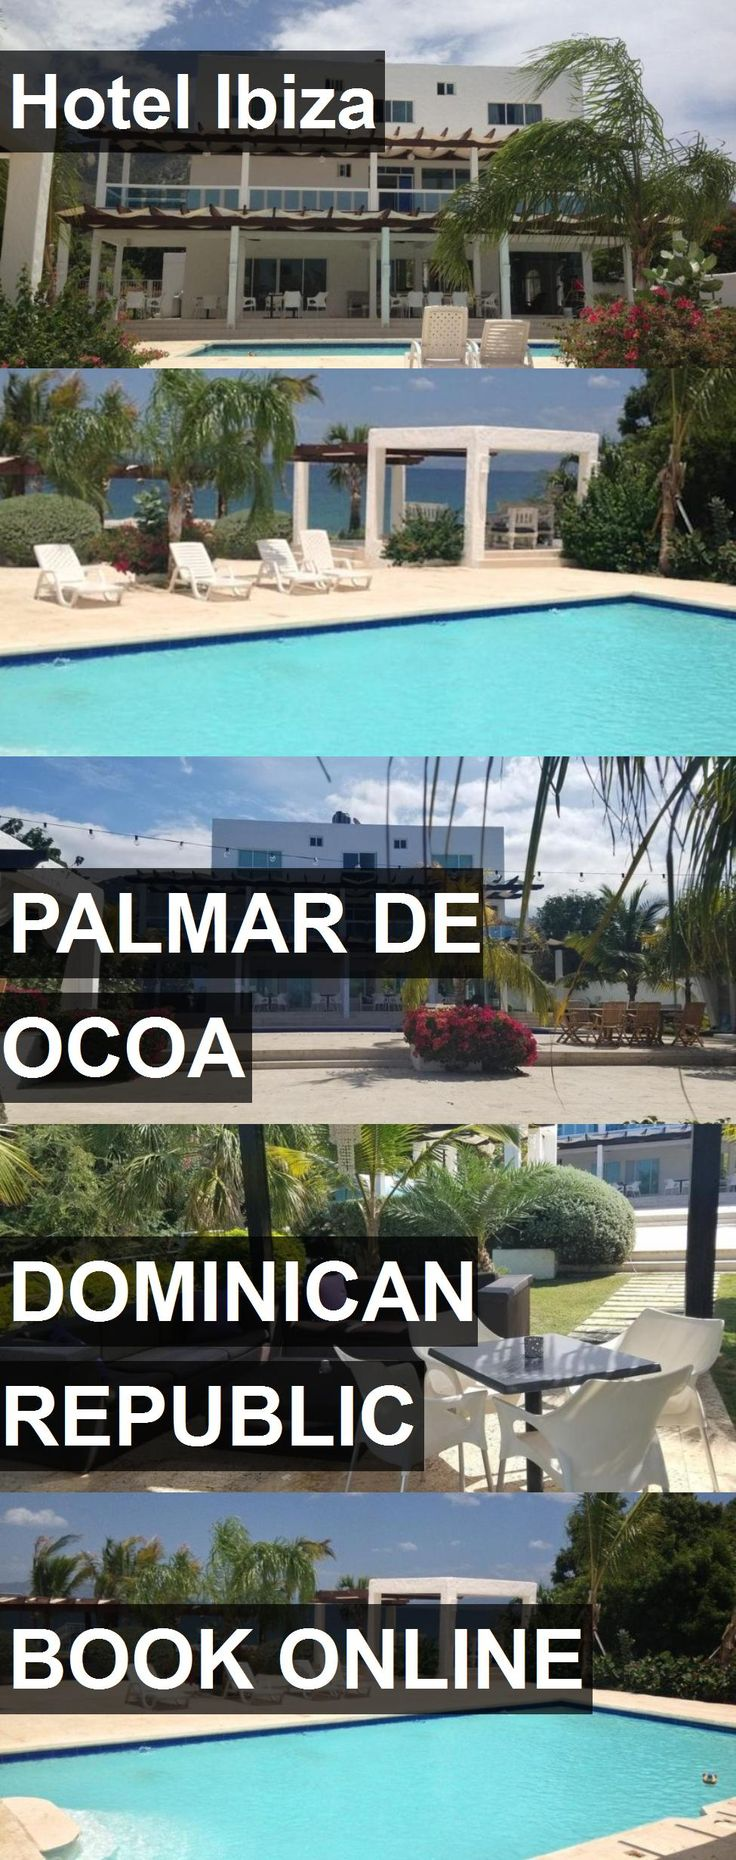 Hotel Ibiza in Palmar de Ocoa, Dominican Republic. For more information, photos, reviews and best prices please follow the link. #DominicanRepublic #PalmardeOcoa #travel #vacation #hotel